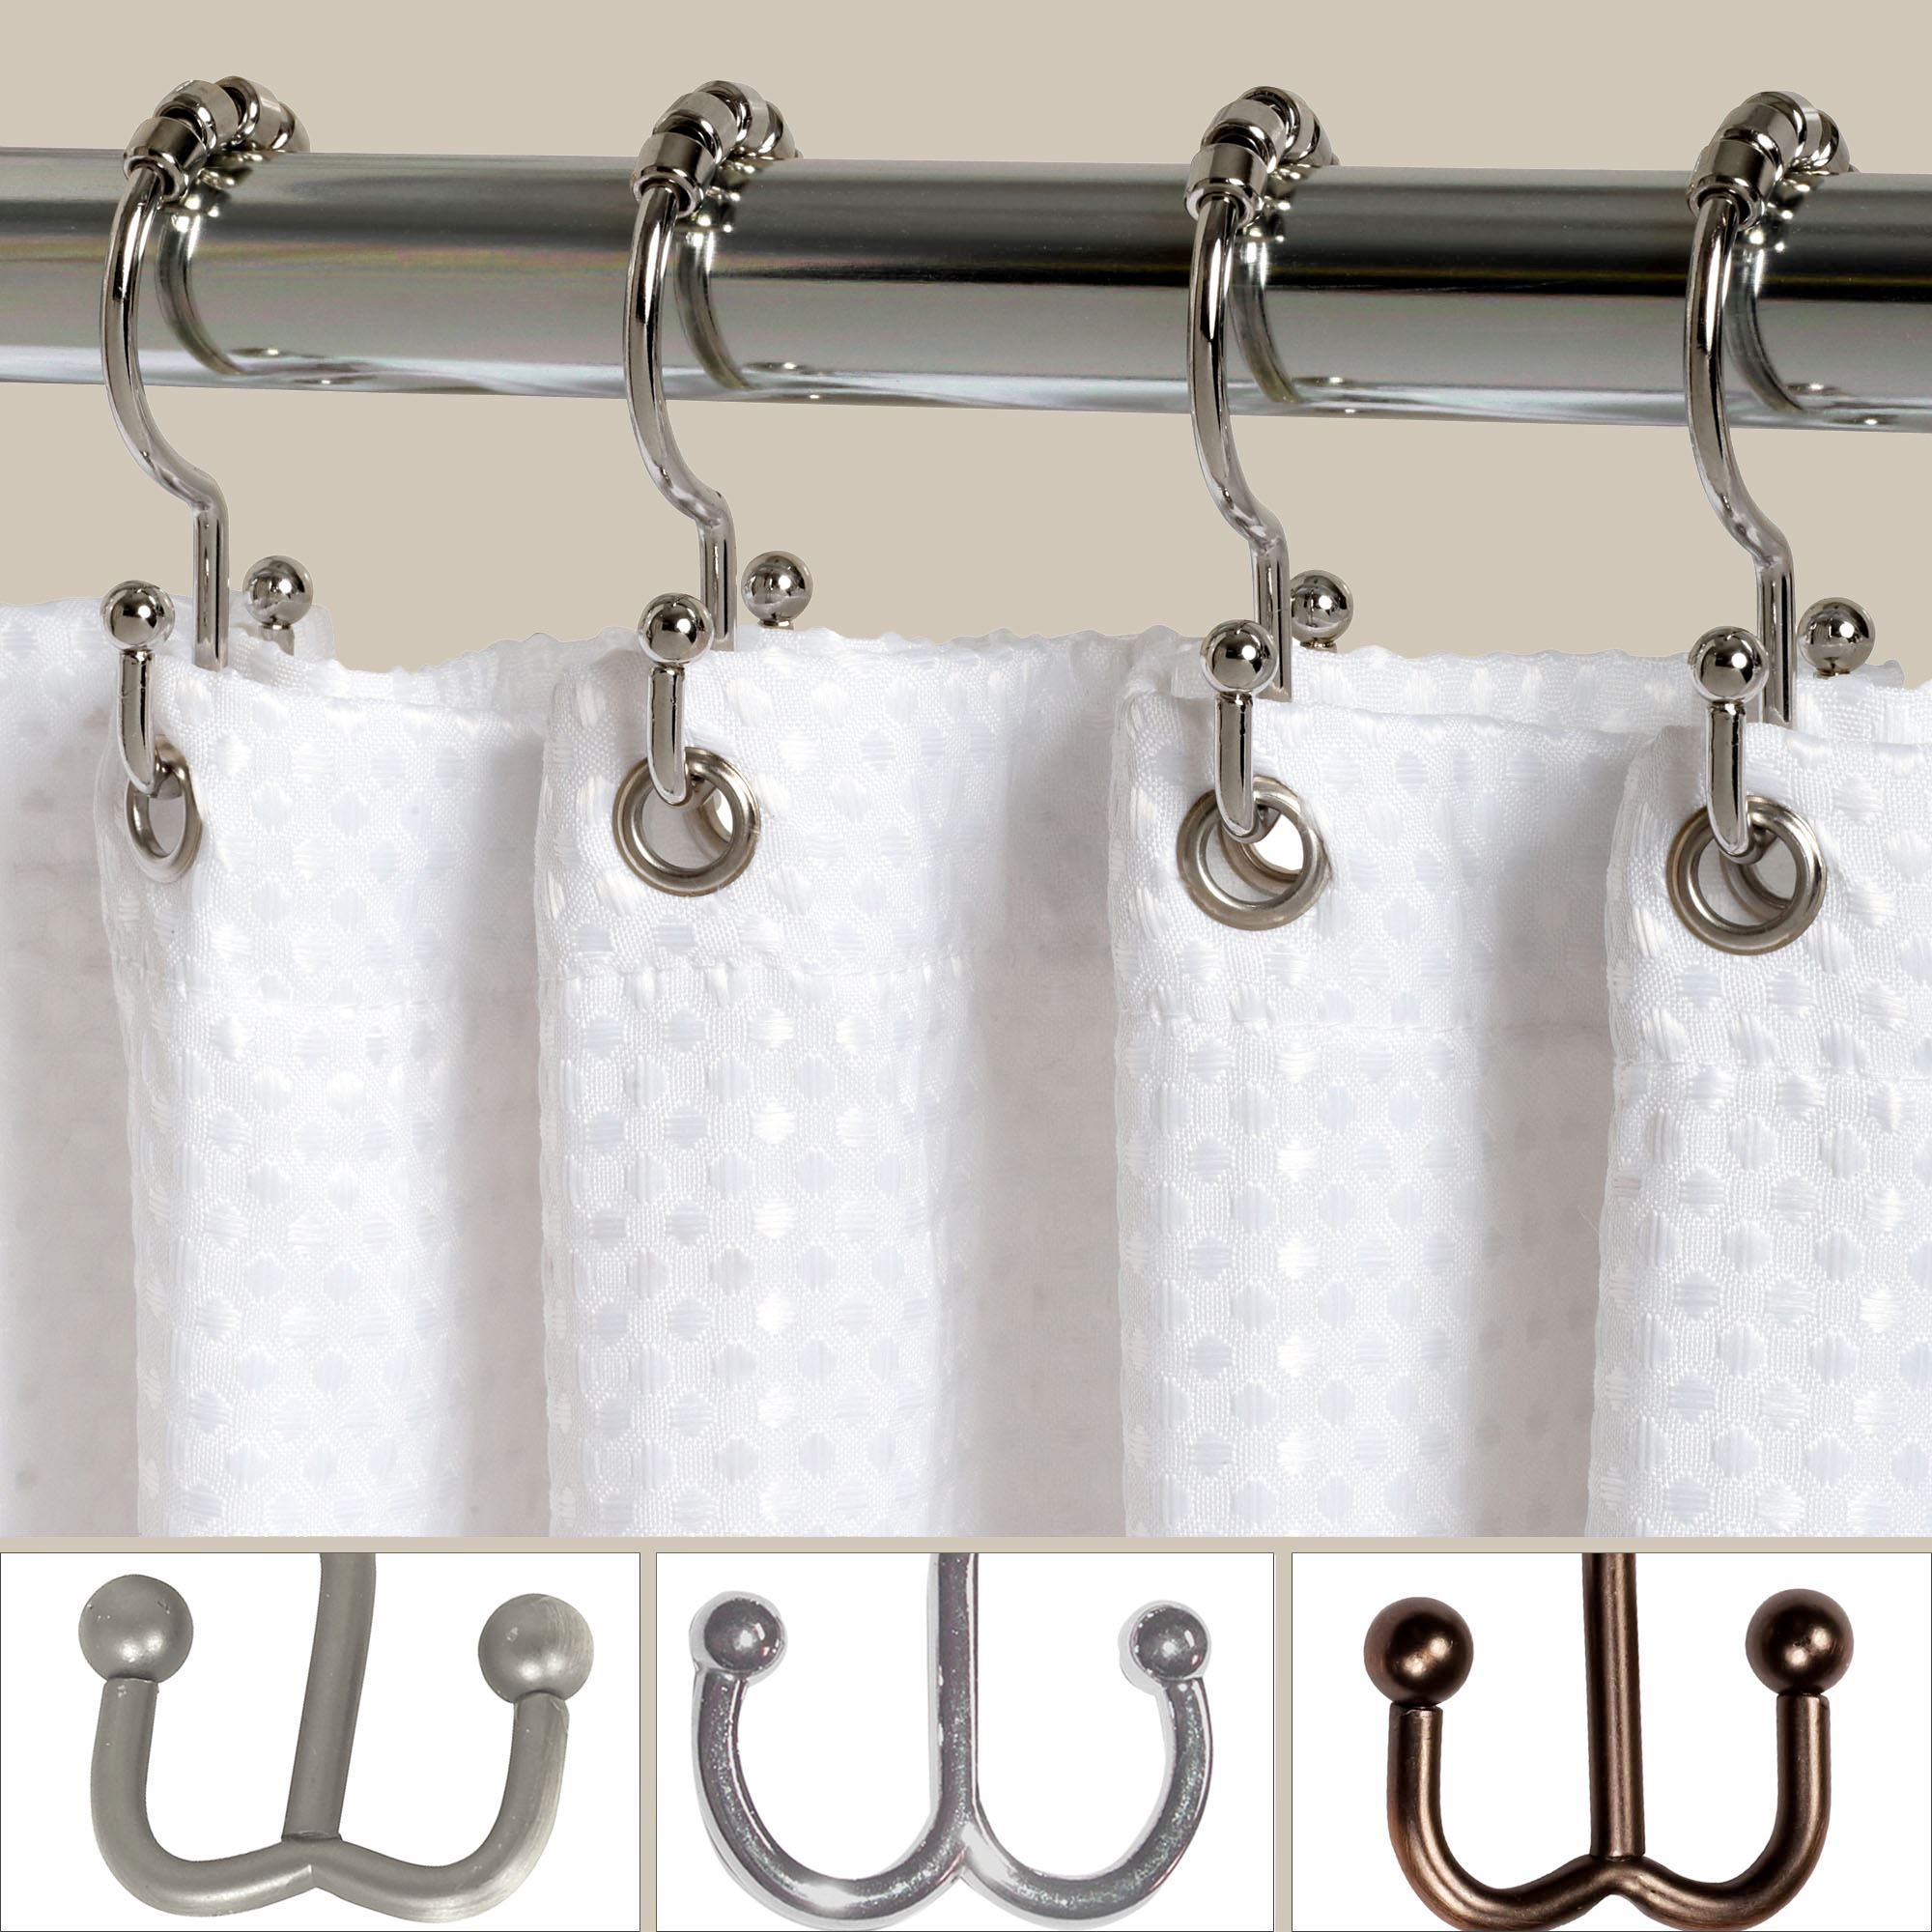 including kitchen bathrooms hooks pictures hook it and bathhooks charming up towel for inspirations bathroom ceramic shower ash